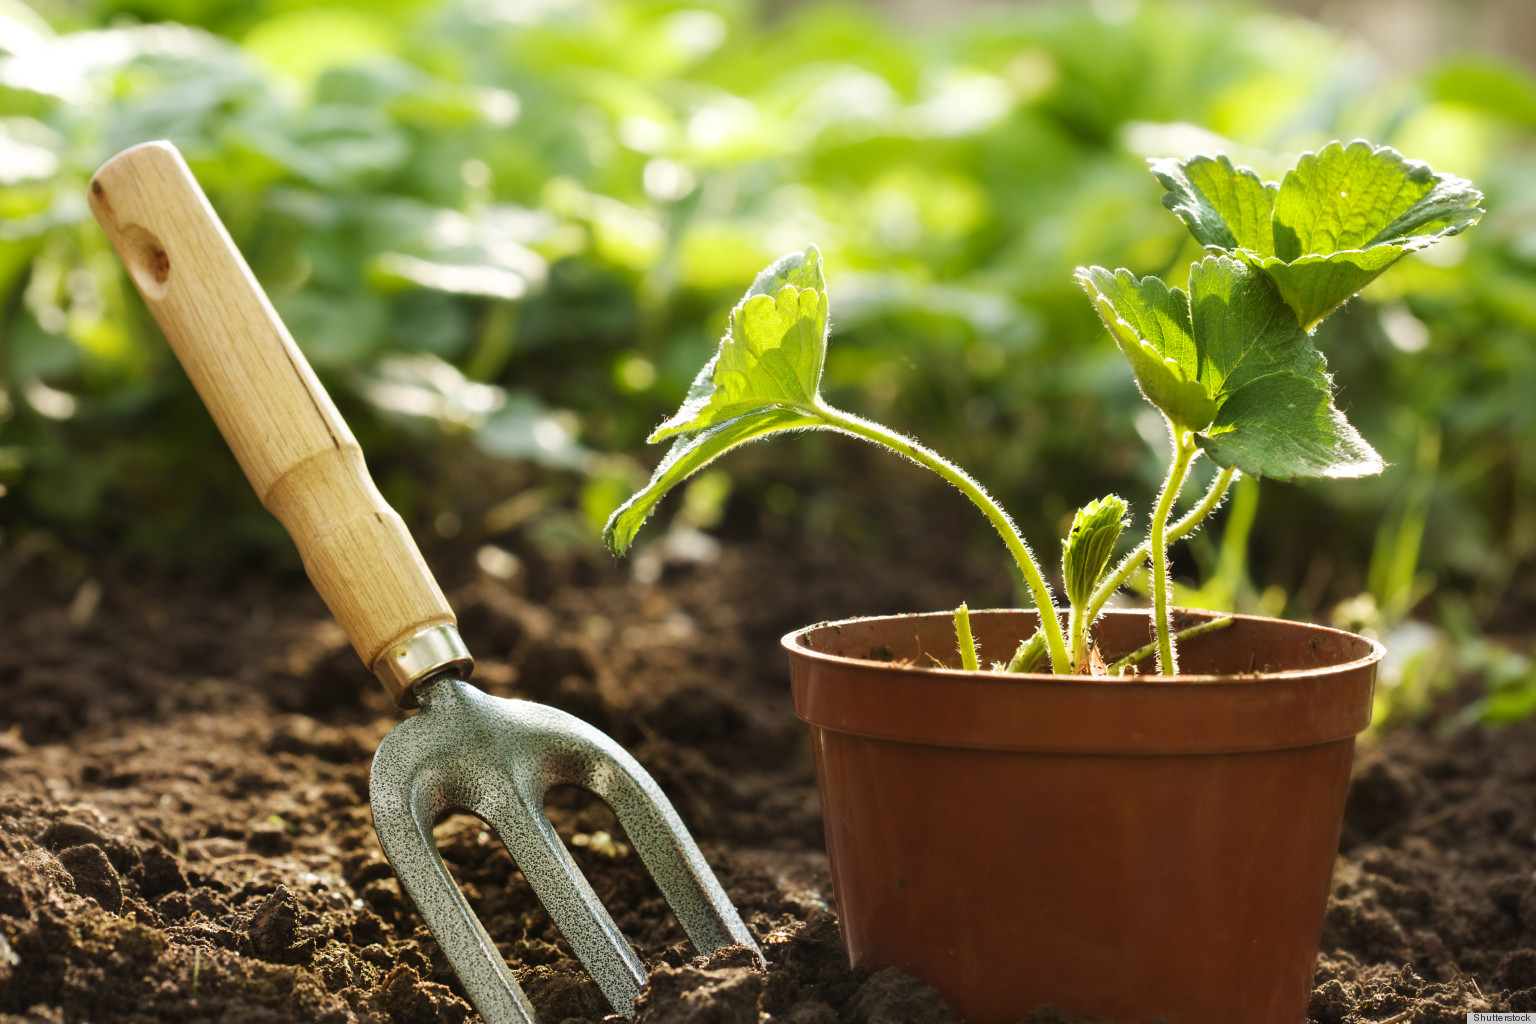 50+ Lifestyles » Yard and Garden: Prepare and Plant Onion Cultivars ...